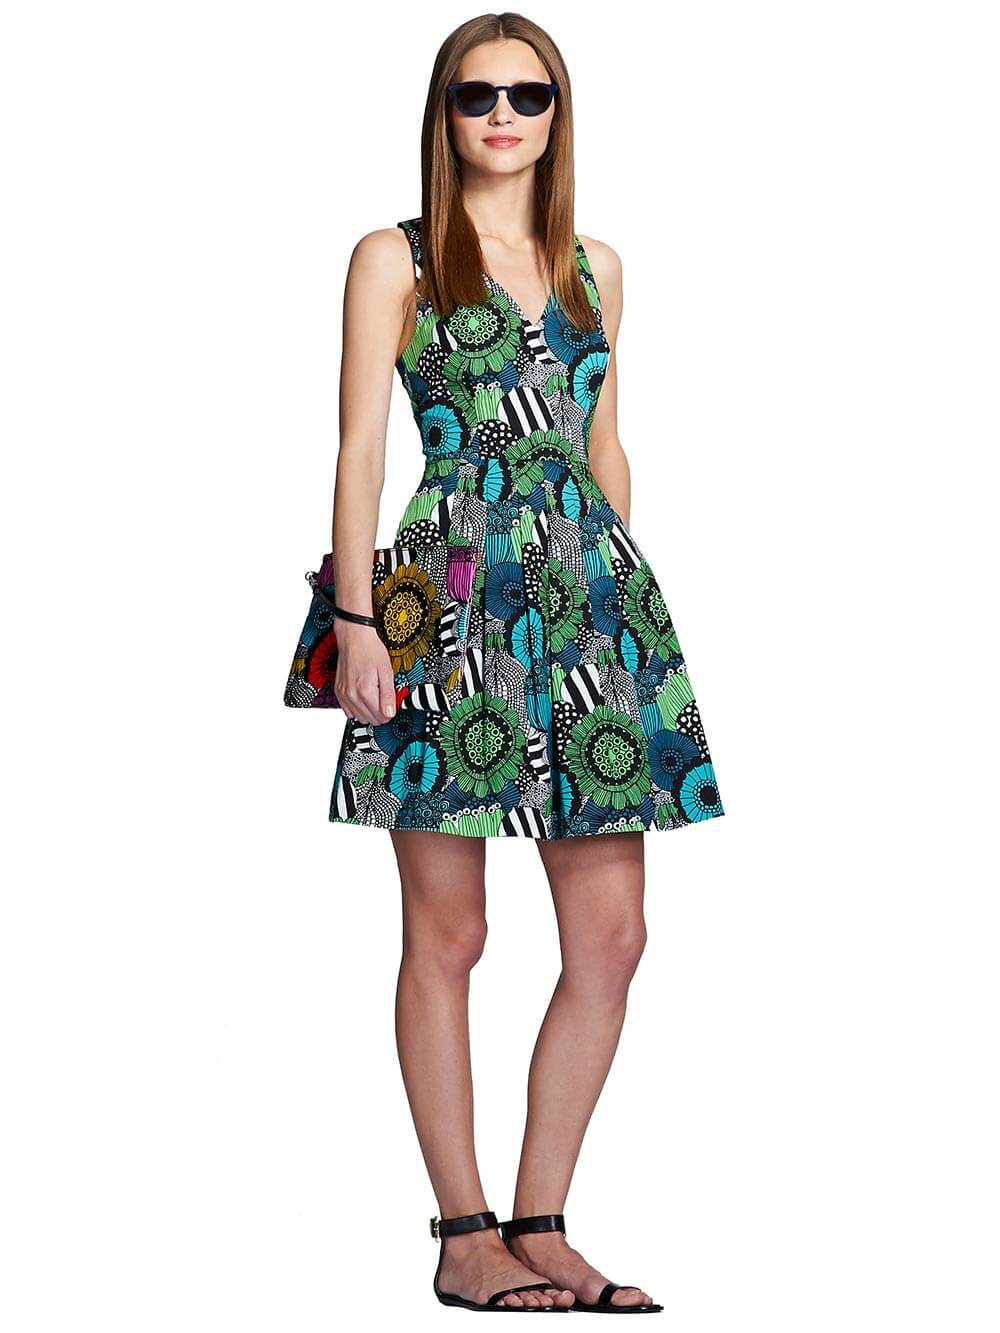 Marimekko Guassi Multicolor Dress A standout among typical Marimekko dresses, the Guassi Dress offers a new silhouette with a graphic yet painterly pattern to mix things up. A departure from the usual sleeveless, A-line silhouettes, the Guassi dress embodies a more modern silhouette.